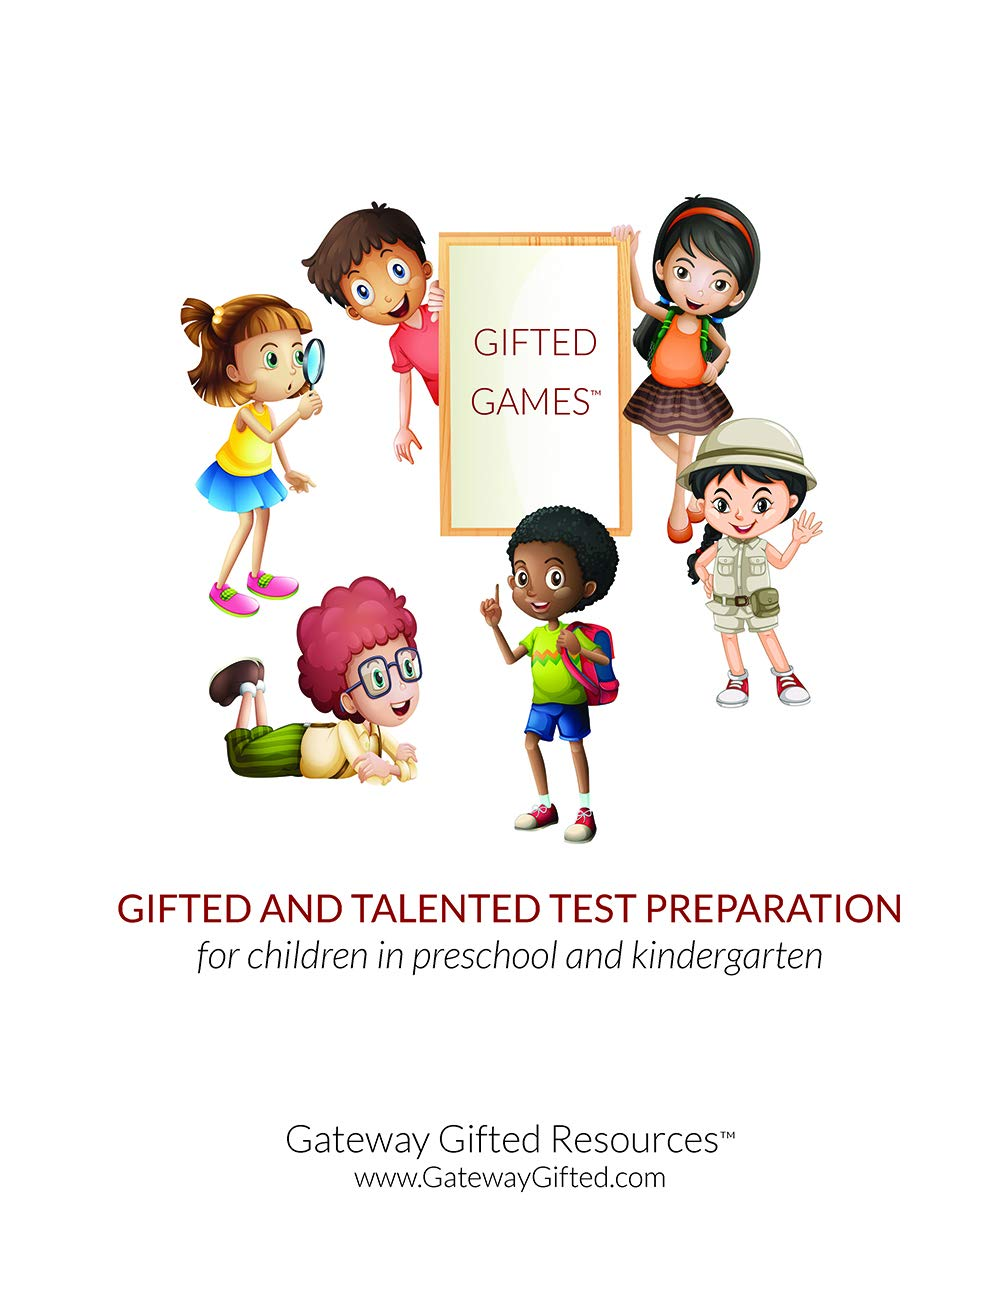 Amazon.com: Gifted and Talented Test Preparation: Gifted test prep book for the OLSAT, NNAT2, and COGAT; Workbook for children in preschool and kindergarten ...